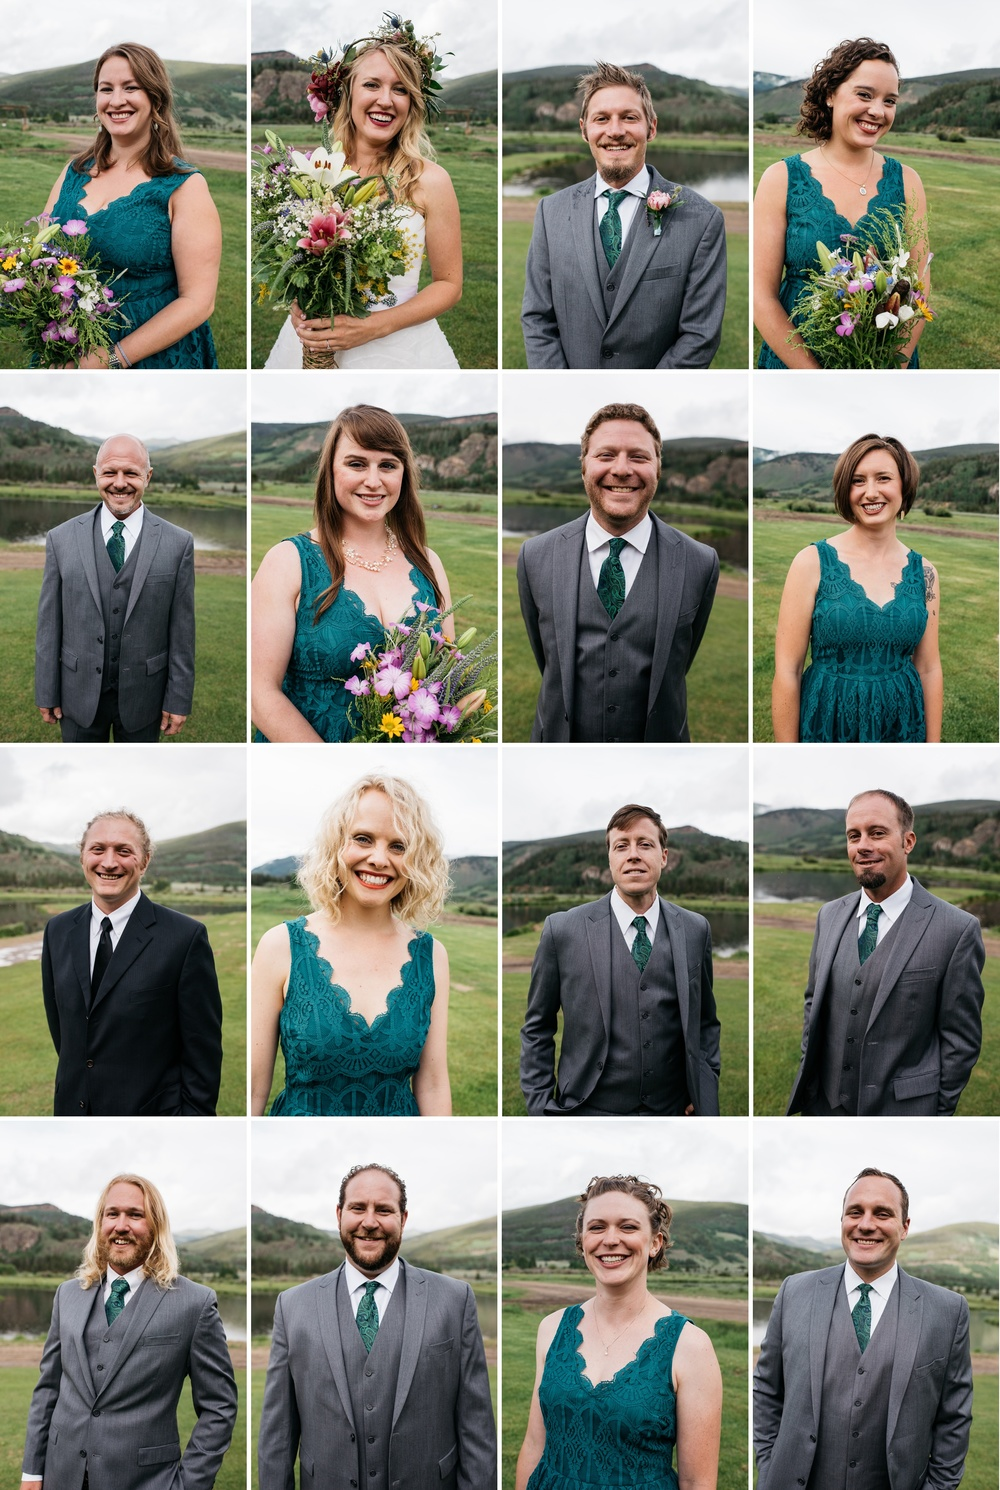 Head shots of the bridal party at a wedding at Camp Hale near Vail, Colorado. Wedding photography by Sonja Salzburg of Sonja K Photography.